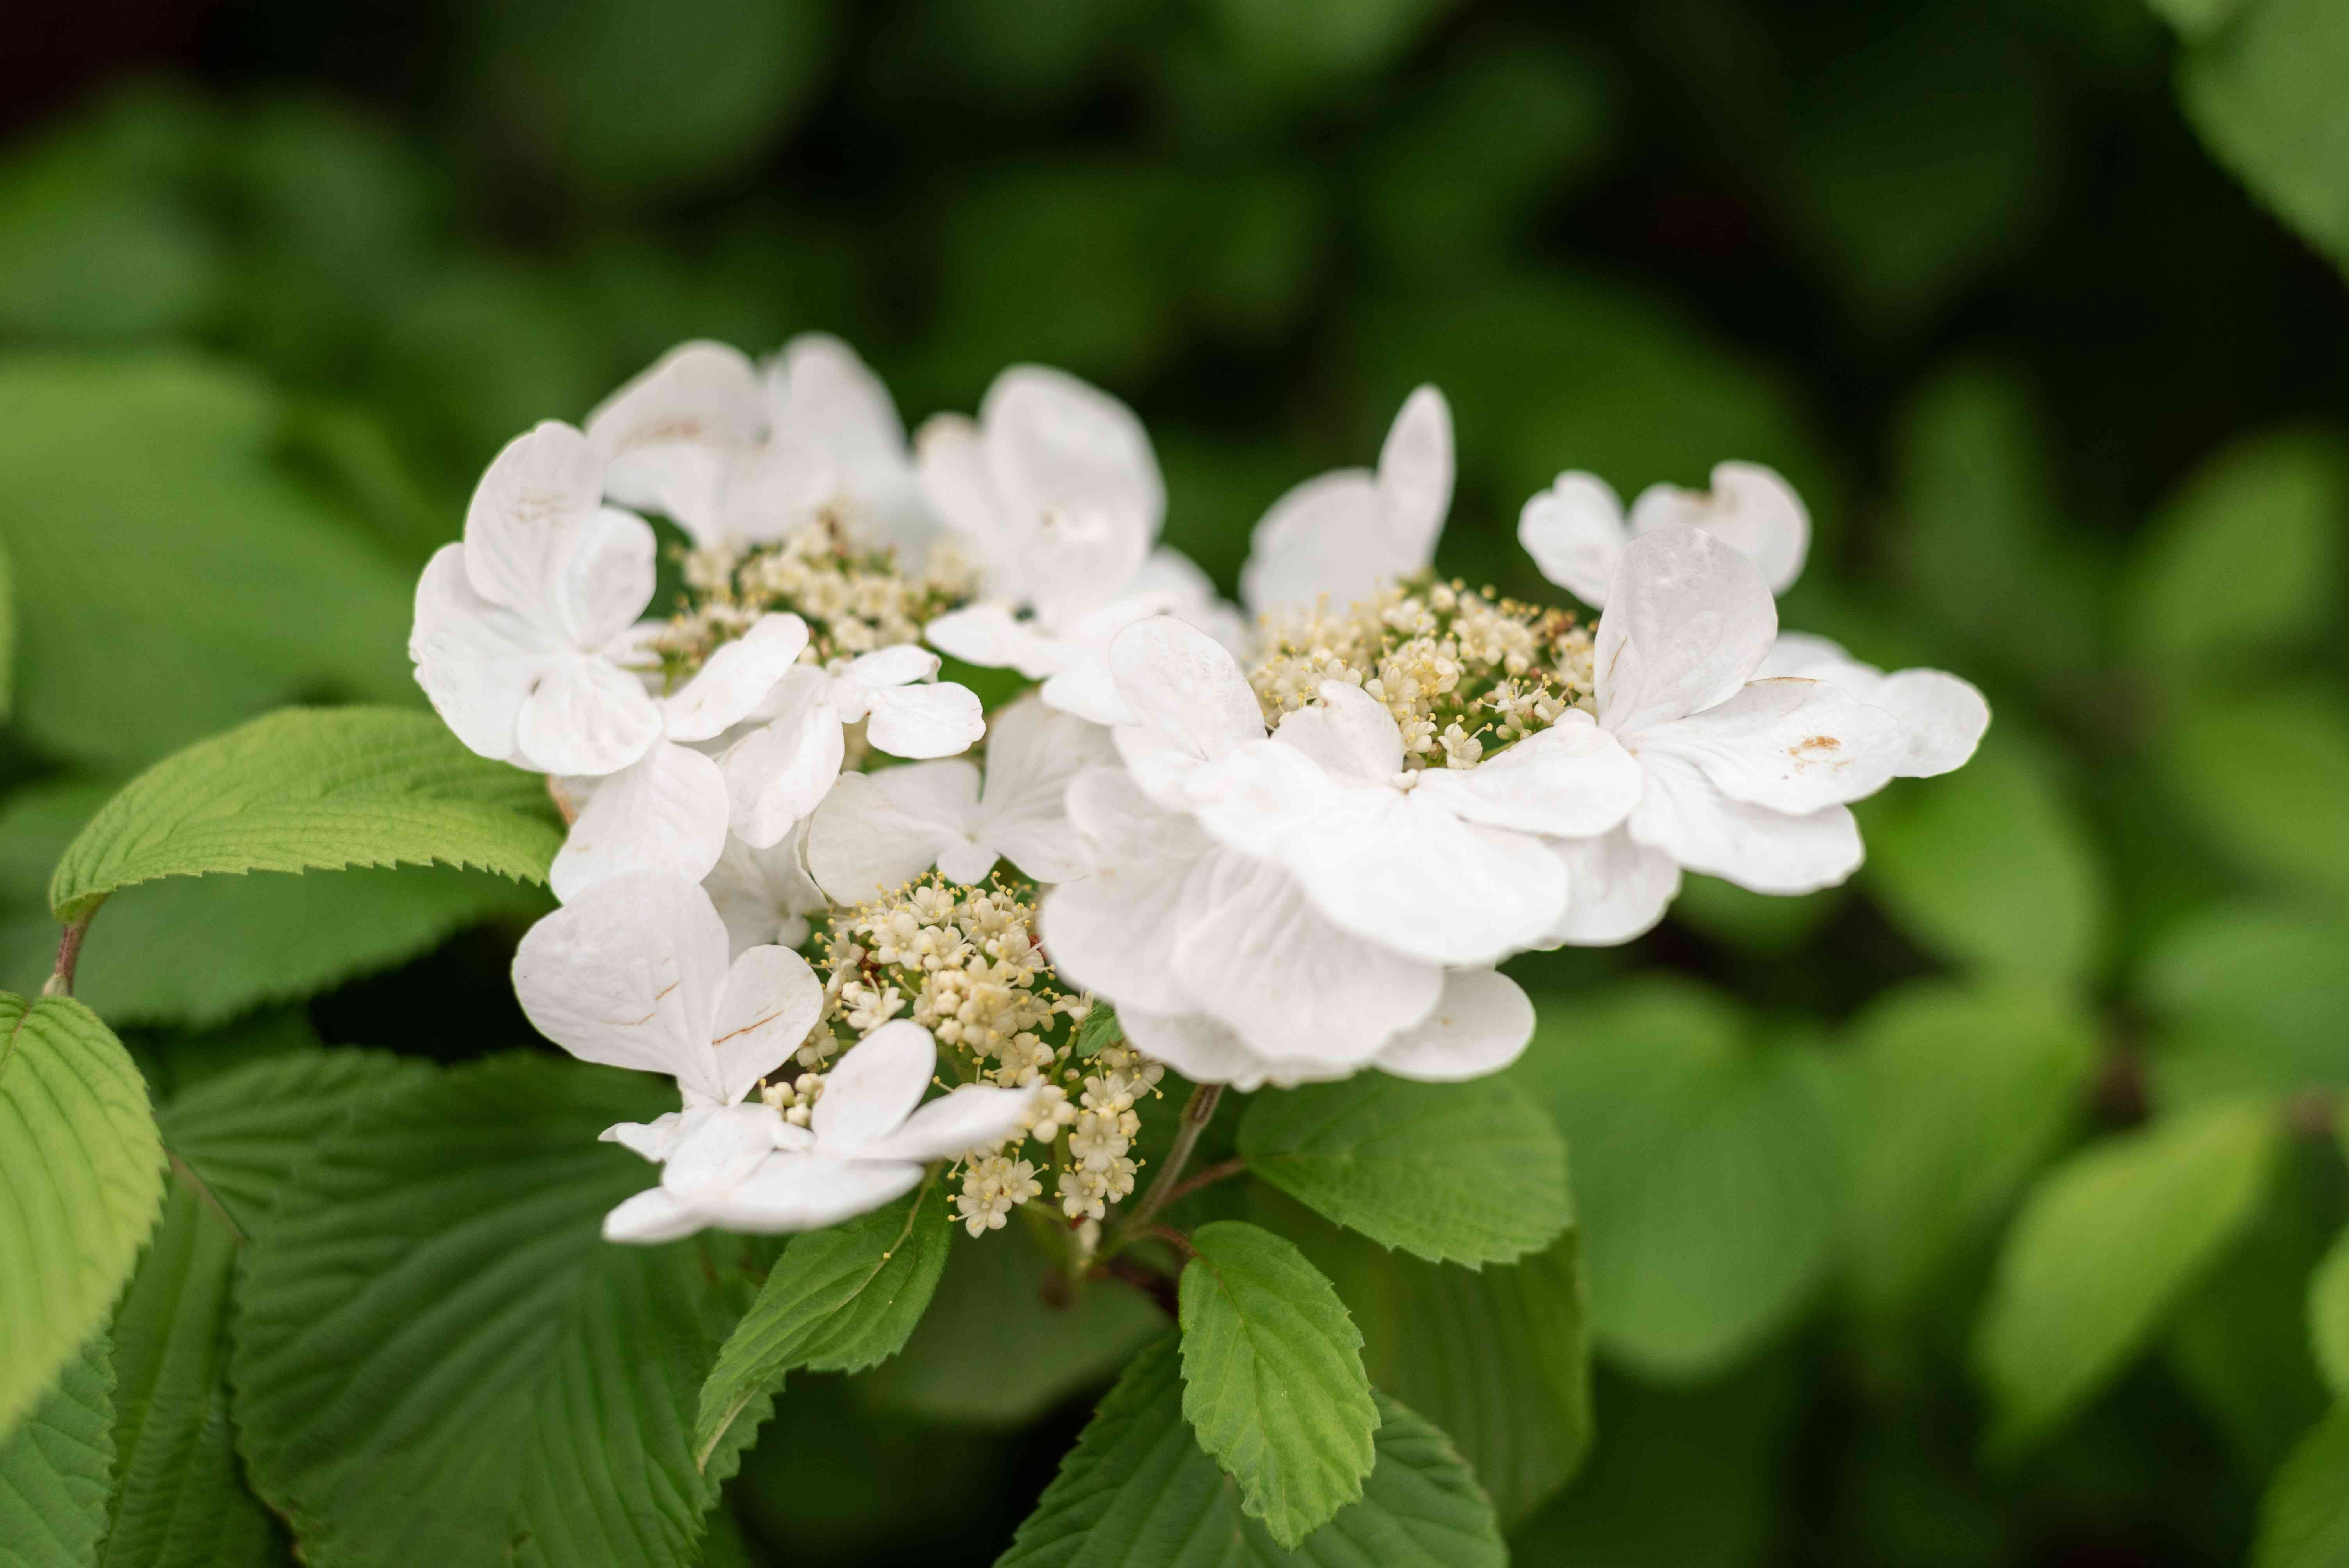 Climbing hydrangea with small white flower clusters on ribbed leaves